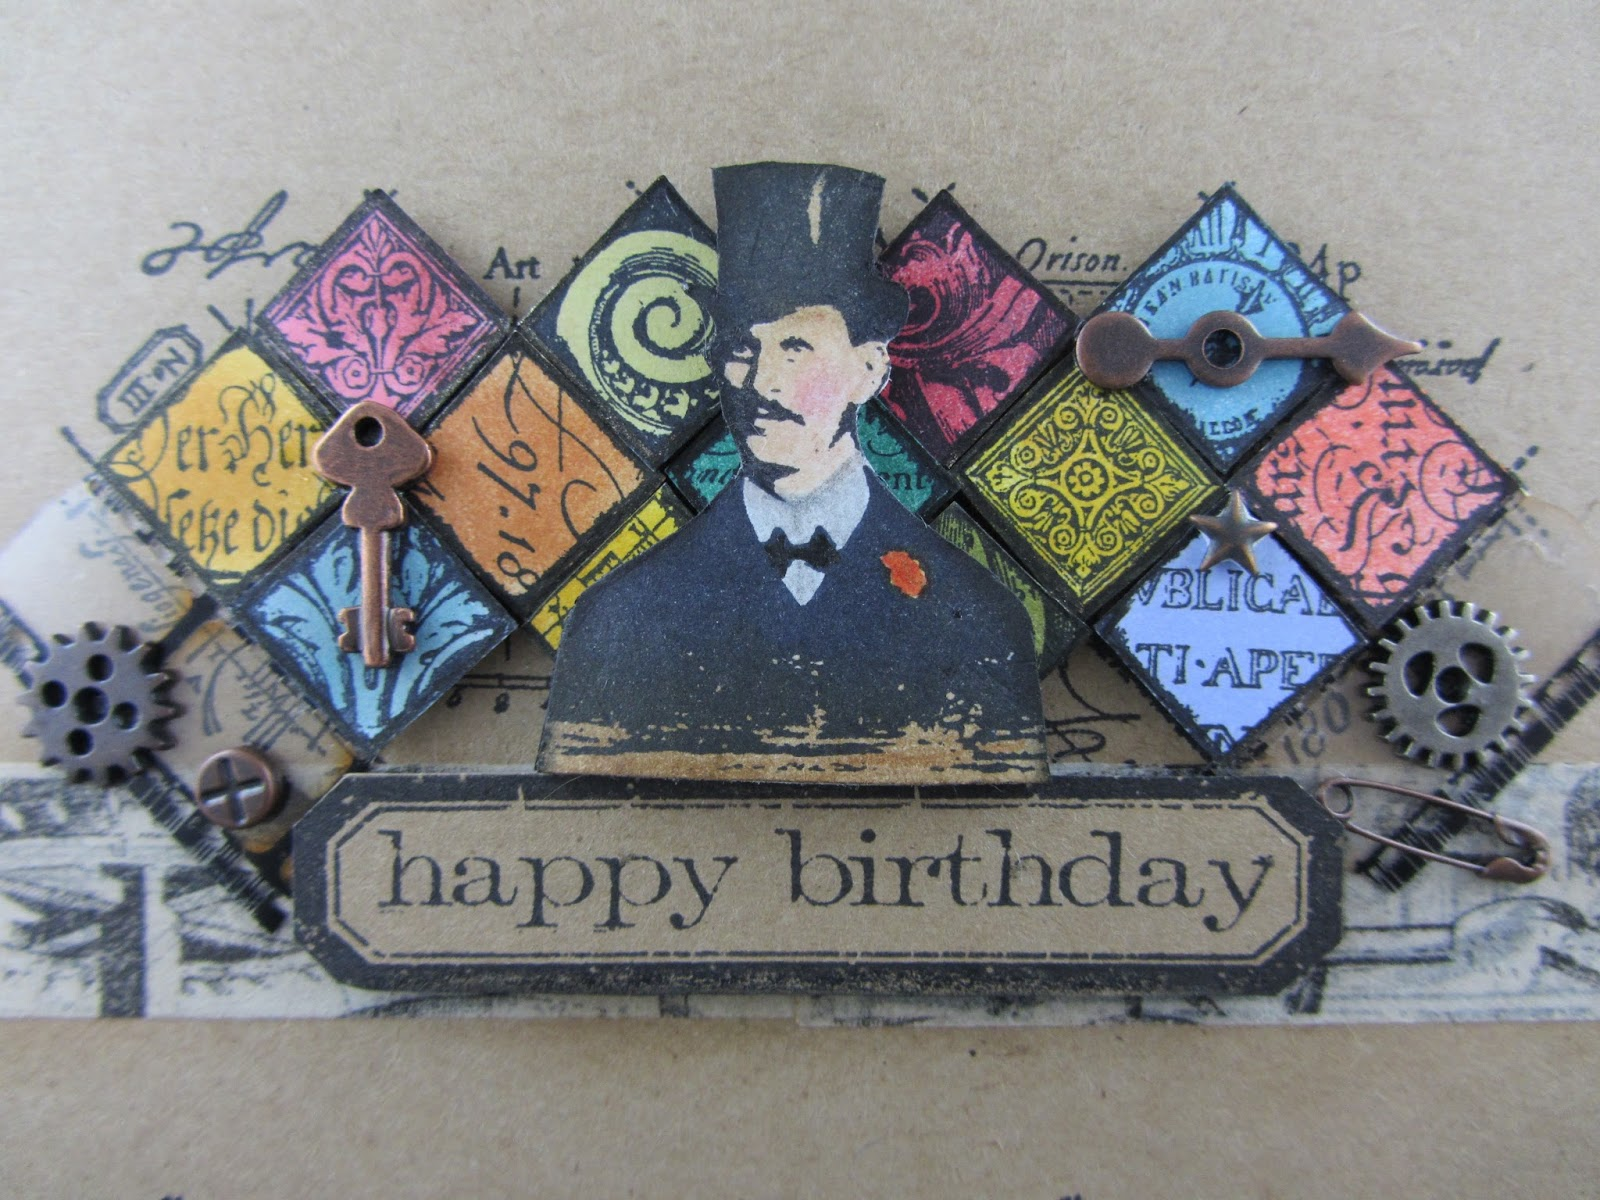 scraps from a broad manly birthday card, Birthday card